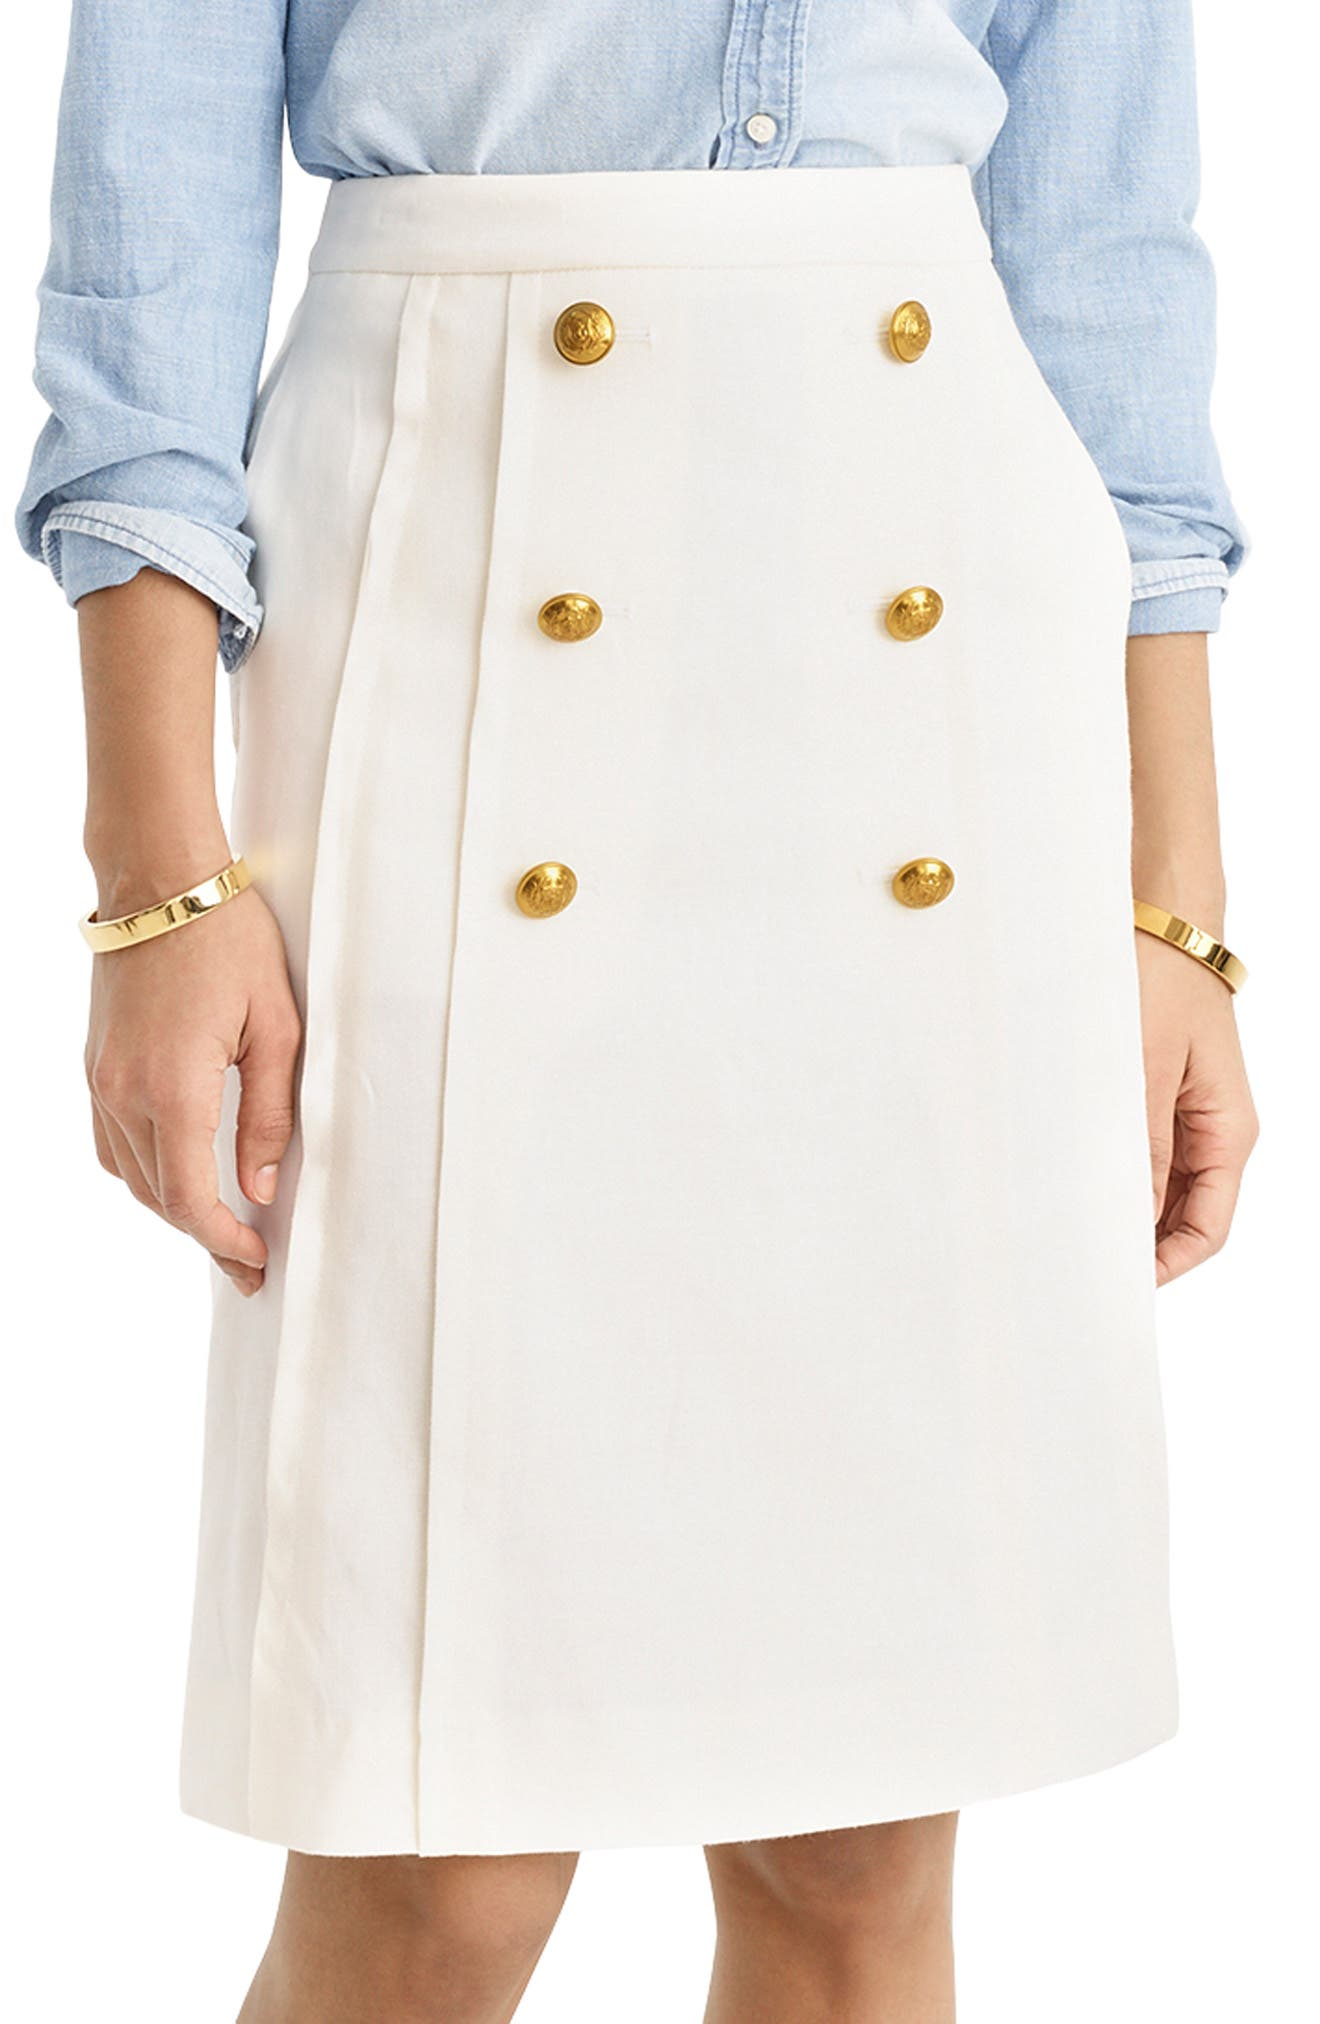 J Crew Creme Button Up Skirt Size 00 Women's Clothing